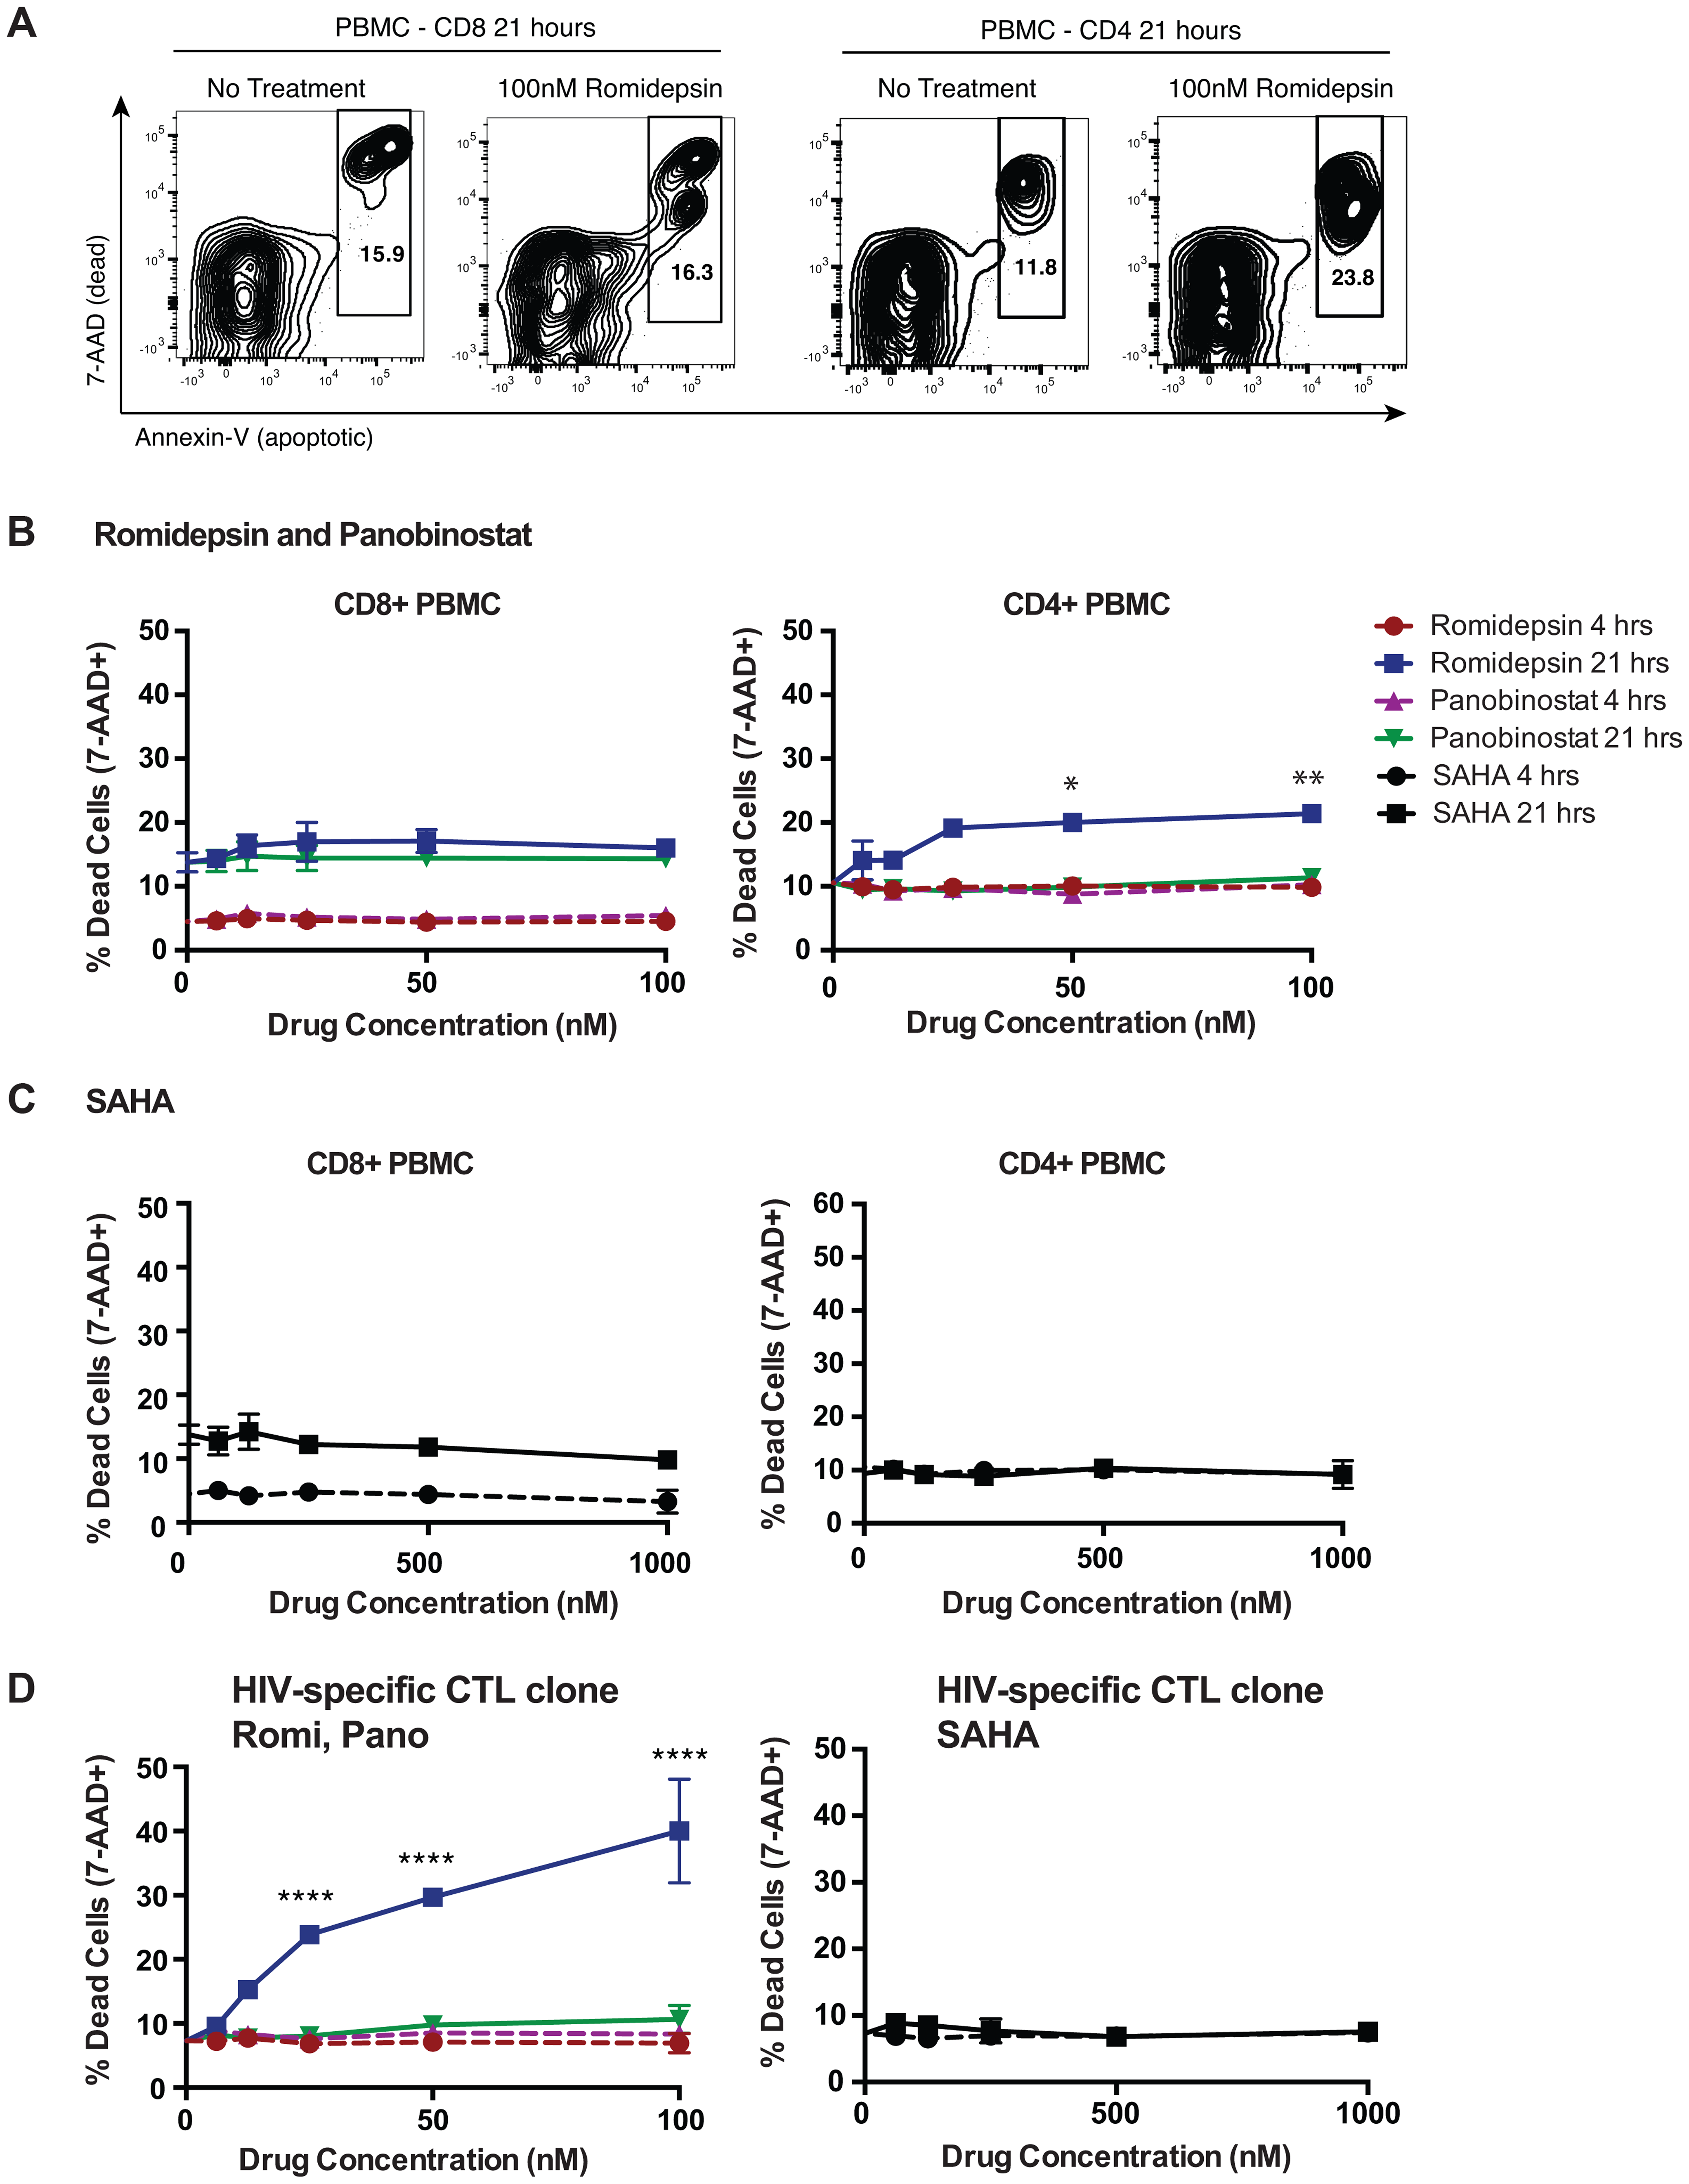 Effects of HDACis on the viability of PBMC CD8<sup>+</sup> and CD4<sup>+</sup> T-cells.